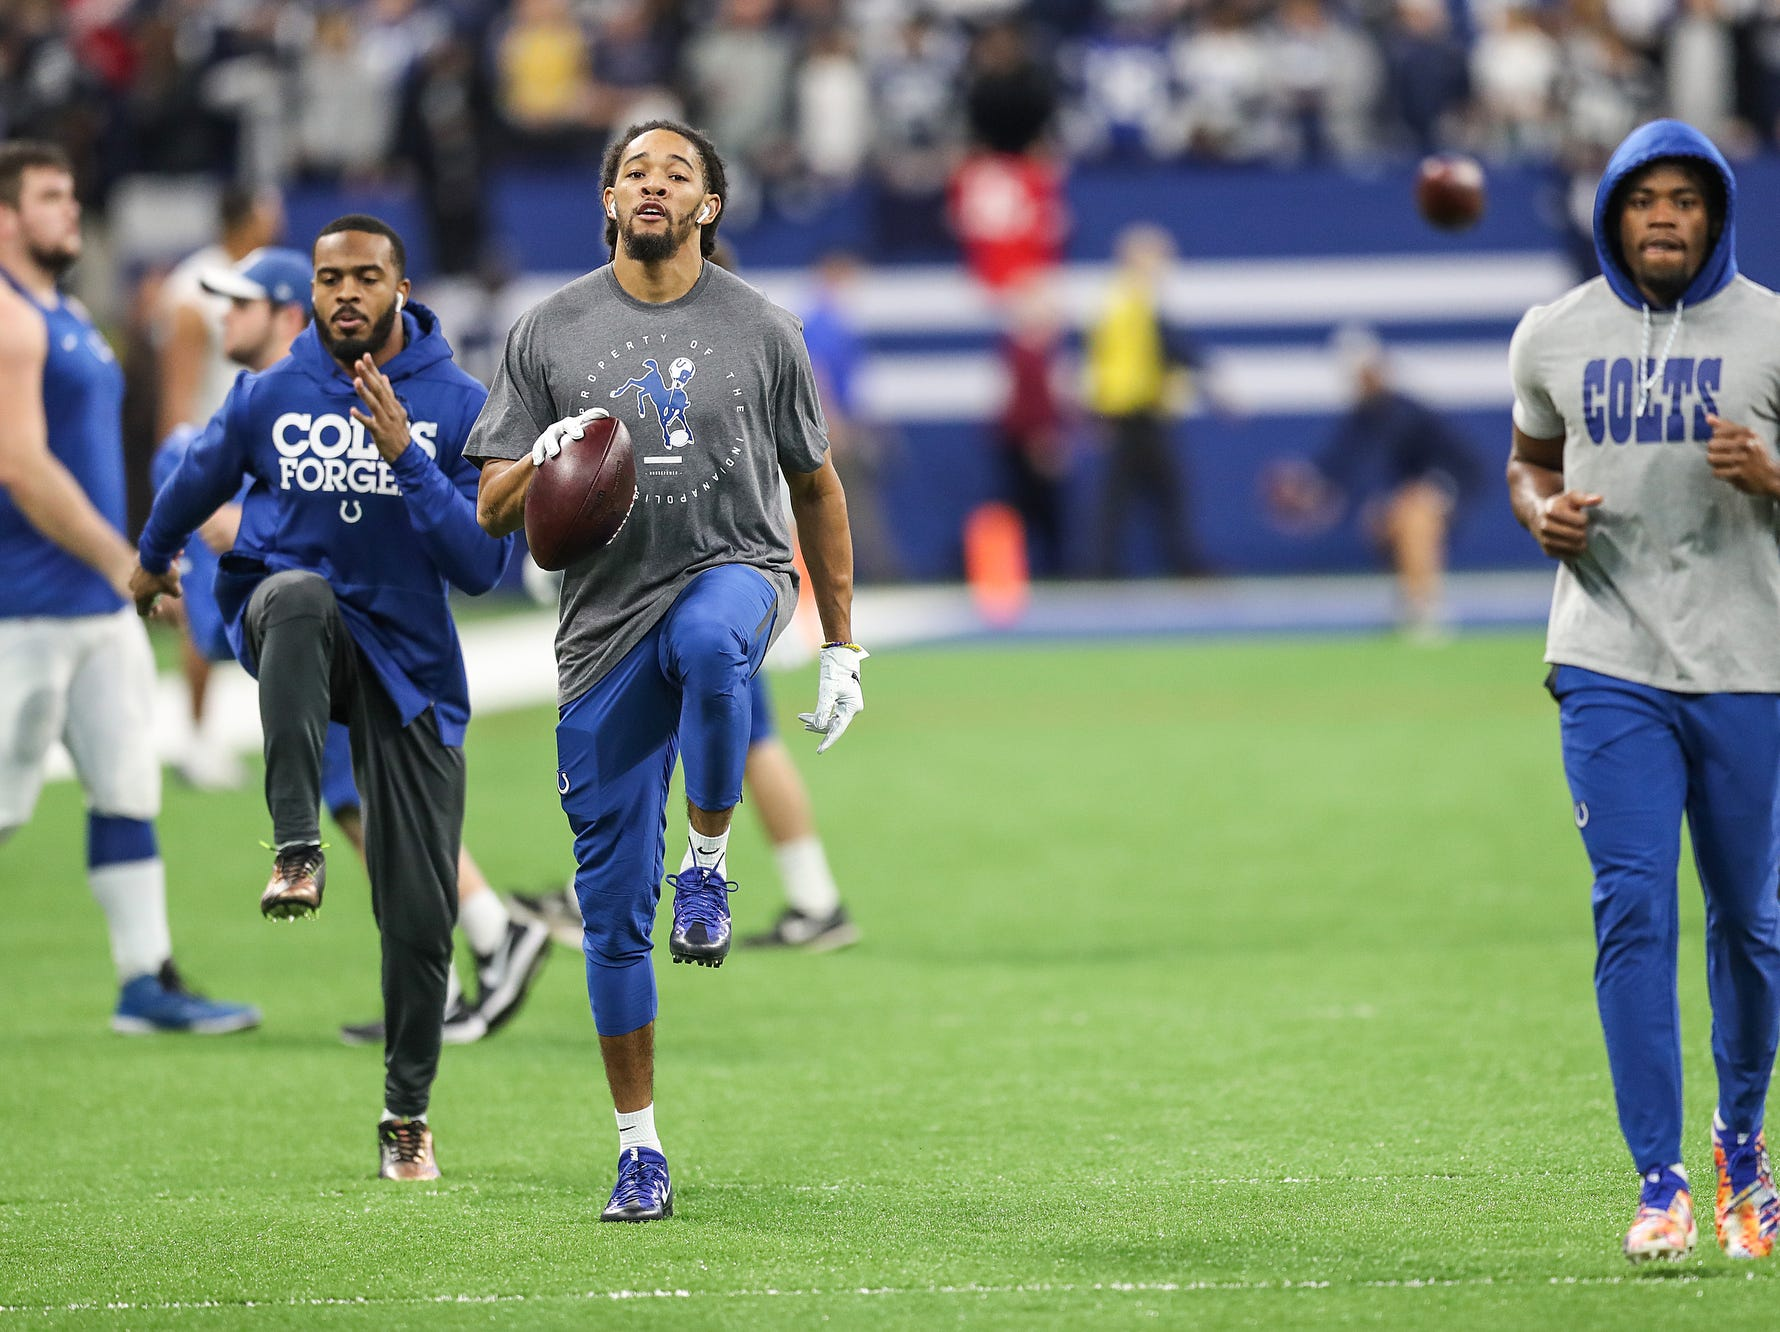 Some of the Indianapolis Colts warm up before they faced the Dallas Cowboys in week 15 at Lucas Oil Stadium in Indianapolis, Sunday, Dec. 16, 2018.